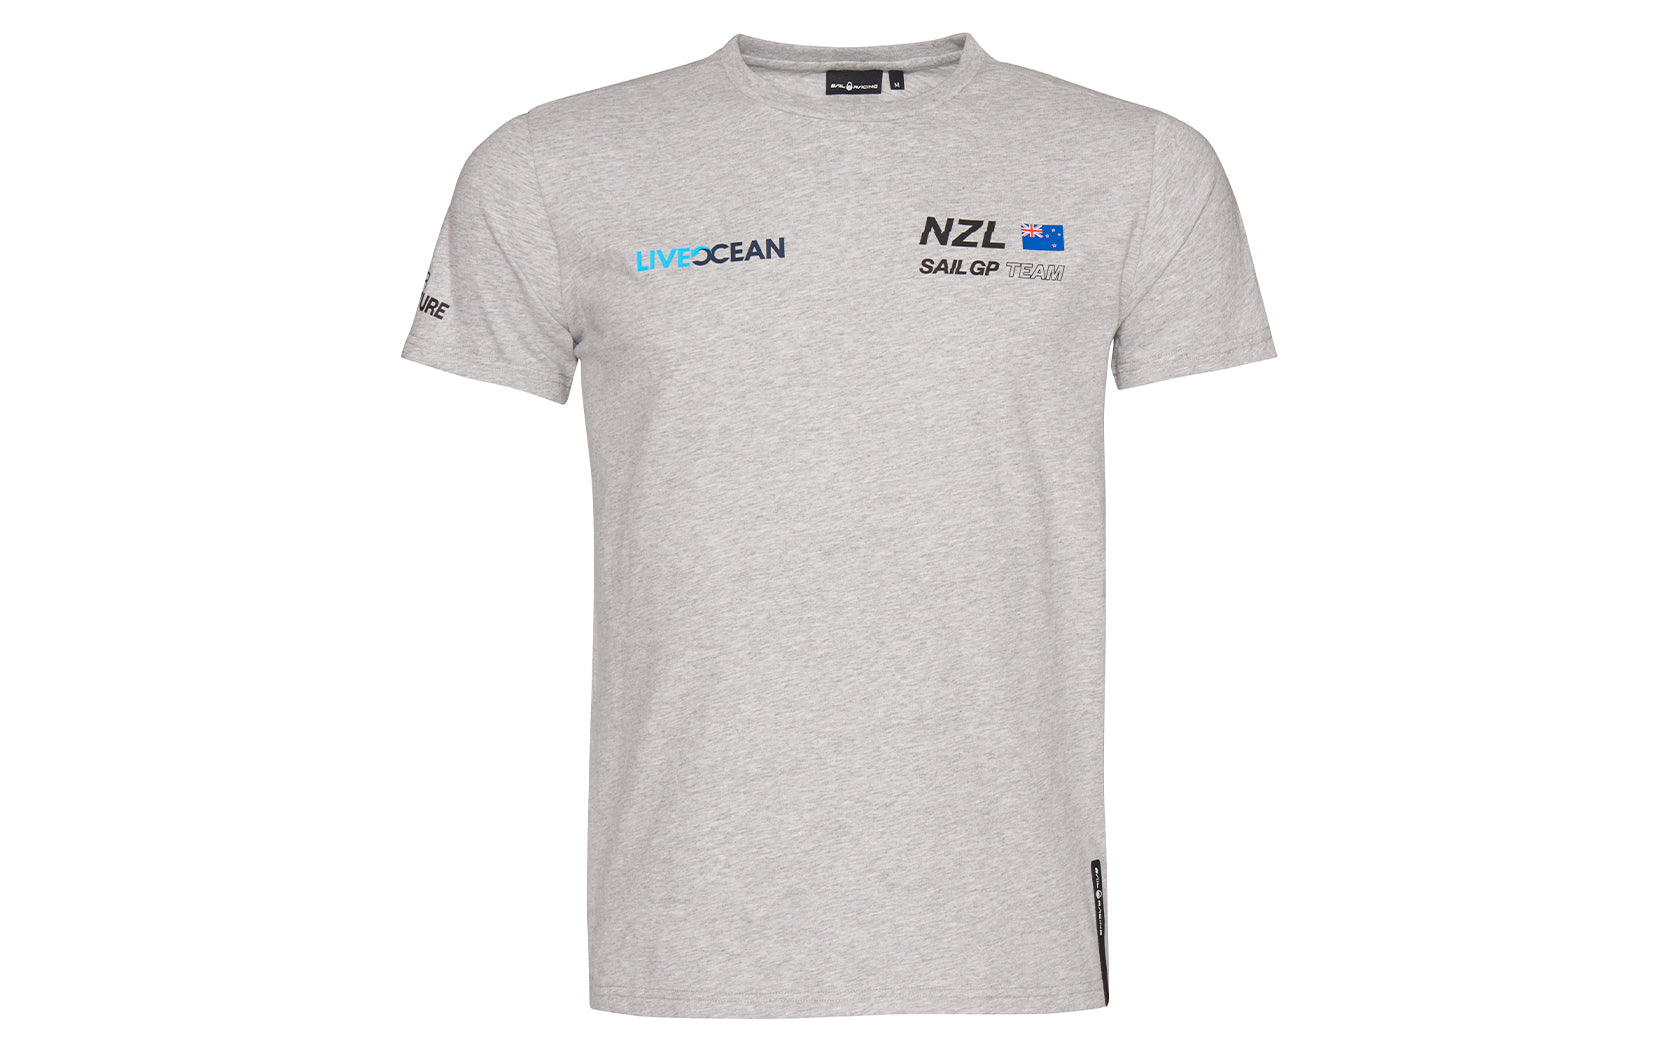 Load image into Gallery viewer, NEW ZEALAND SAILGP TEE